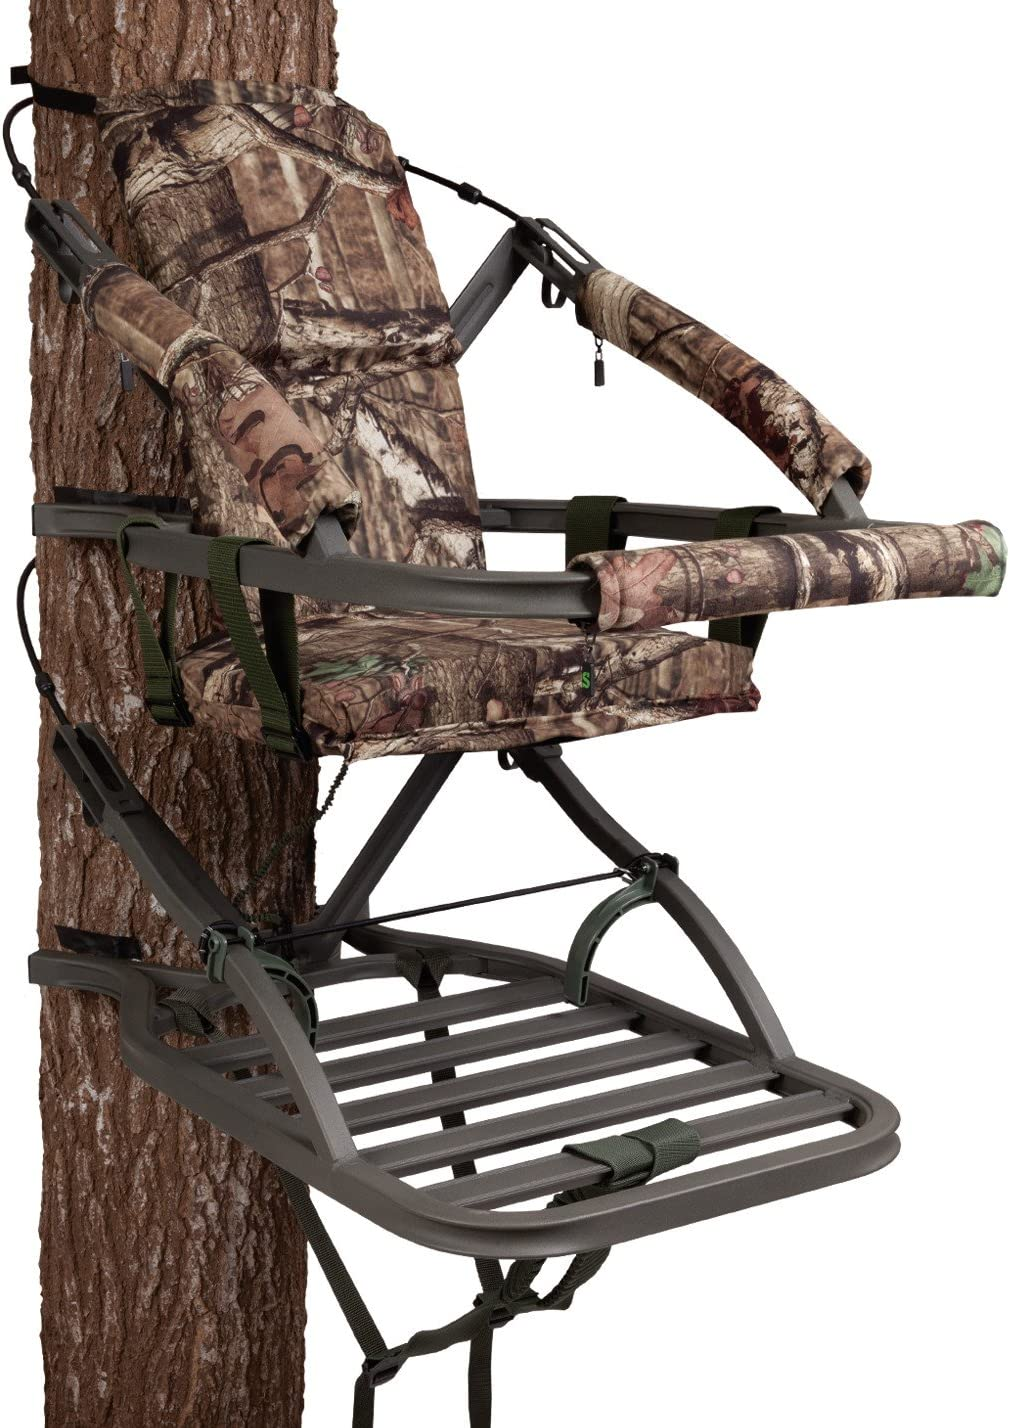 Summit Treestands Viper SD Climbing Tree Stand